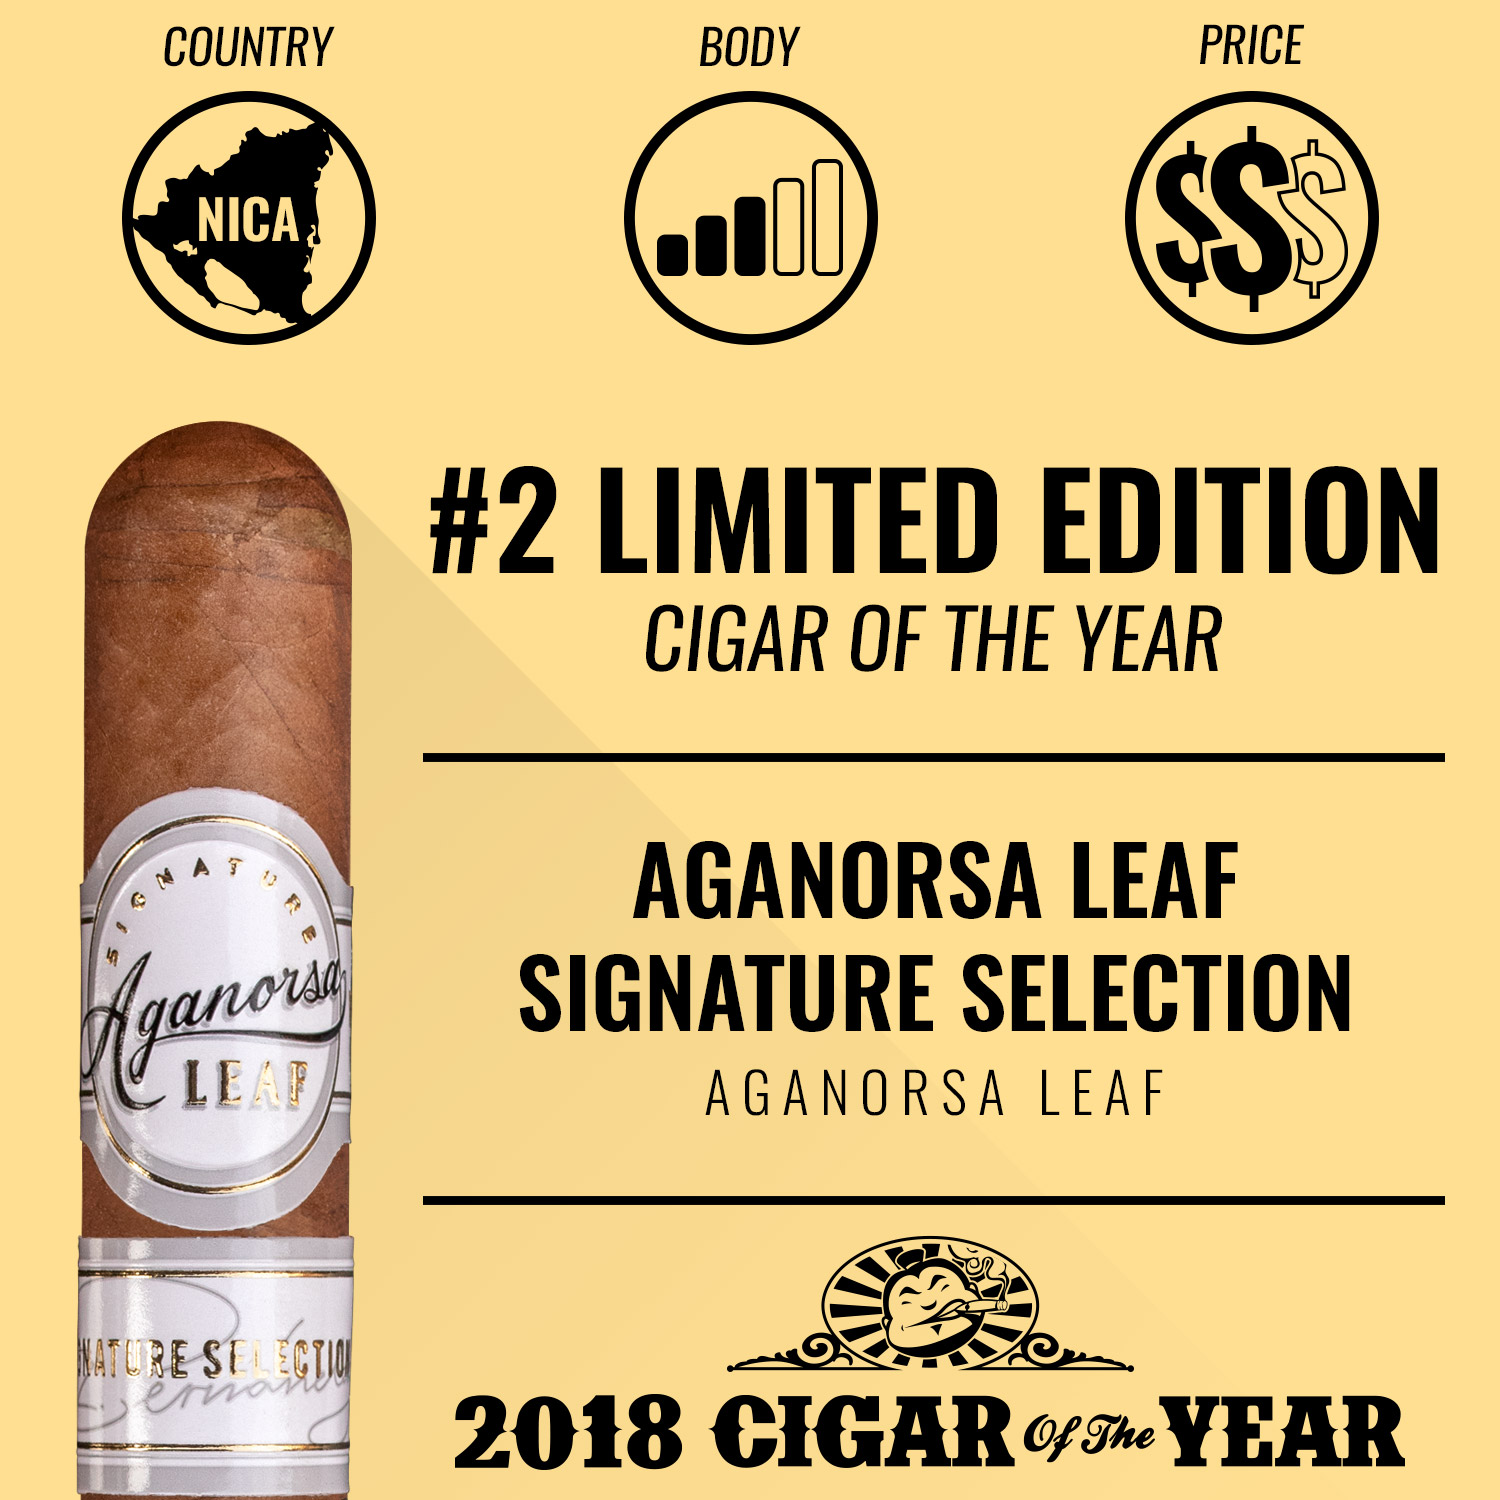 Aganorsa Leaf Signature Selection No. 2 Limited Edition Cigar of the Year 2018